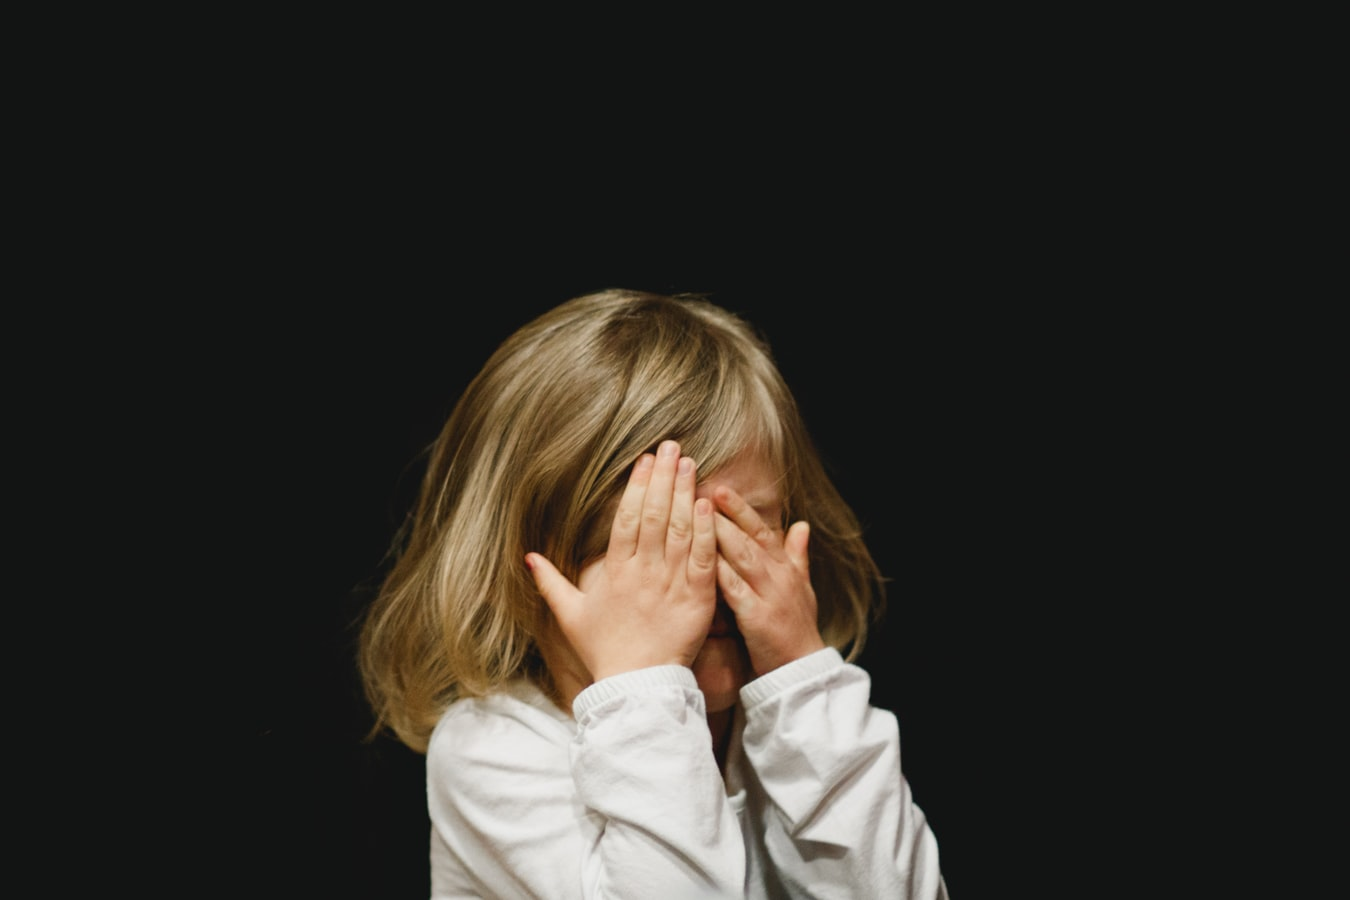 Reactive attachment disorderof infancy or early childhood